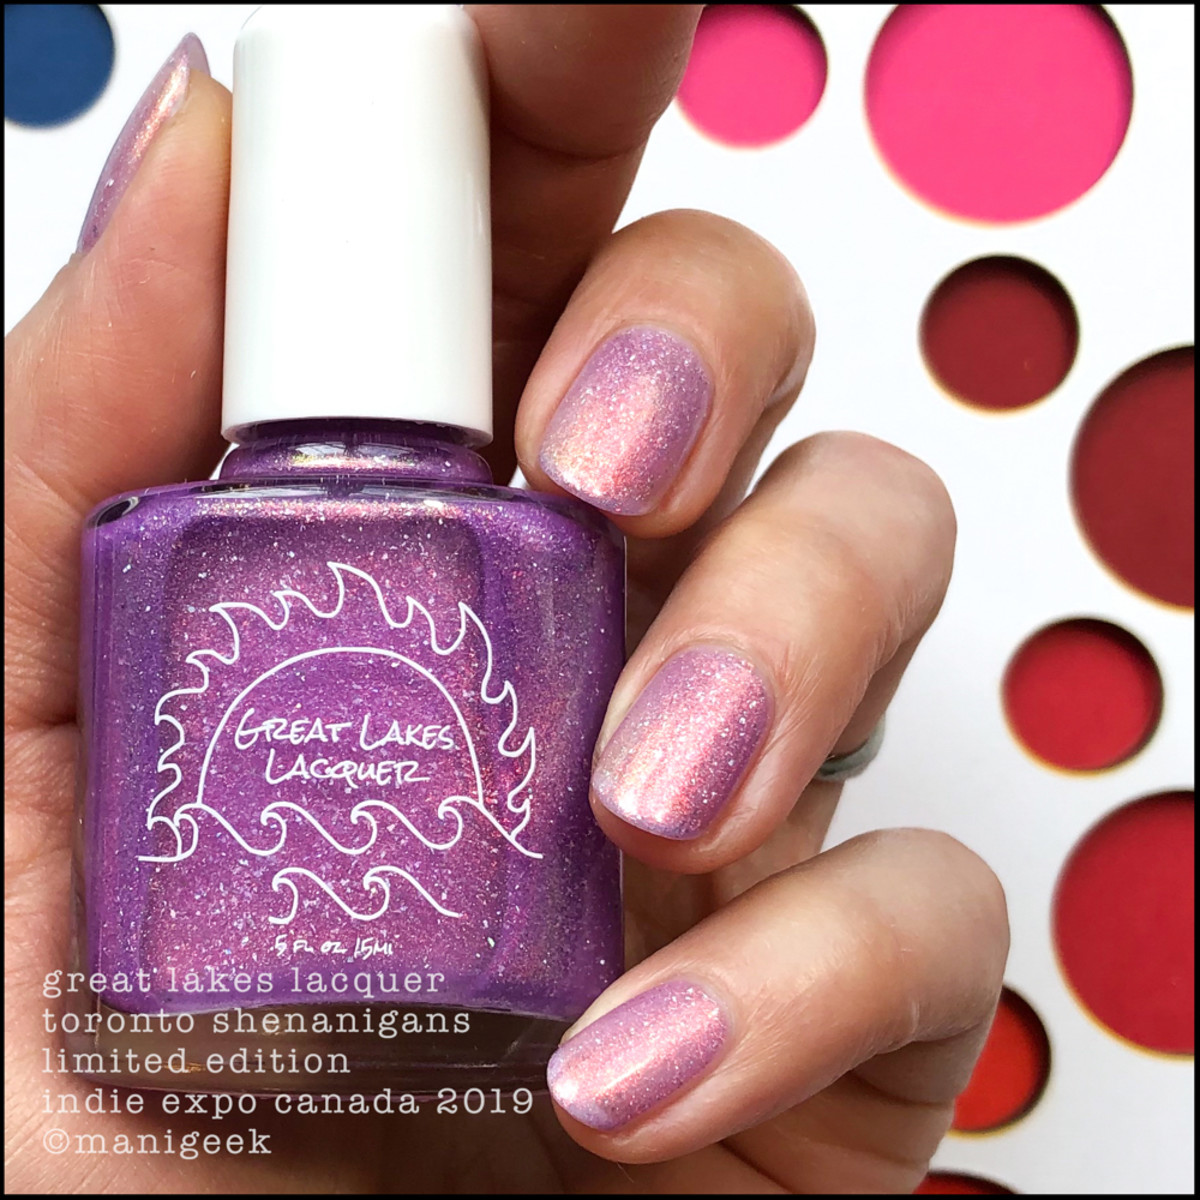 Great Lakes Lacquer Toronto Shenanigans - LE IEC 2019 1